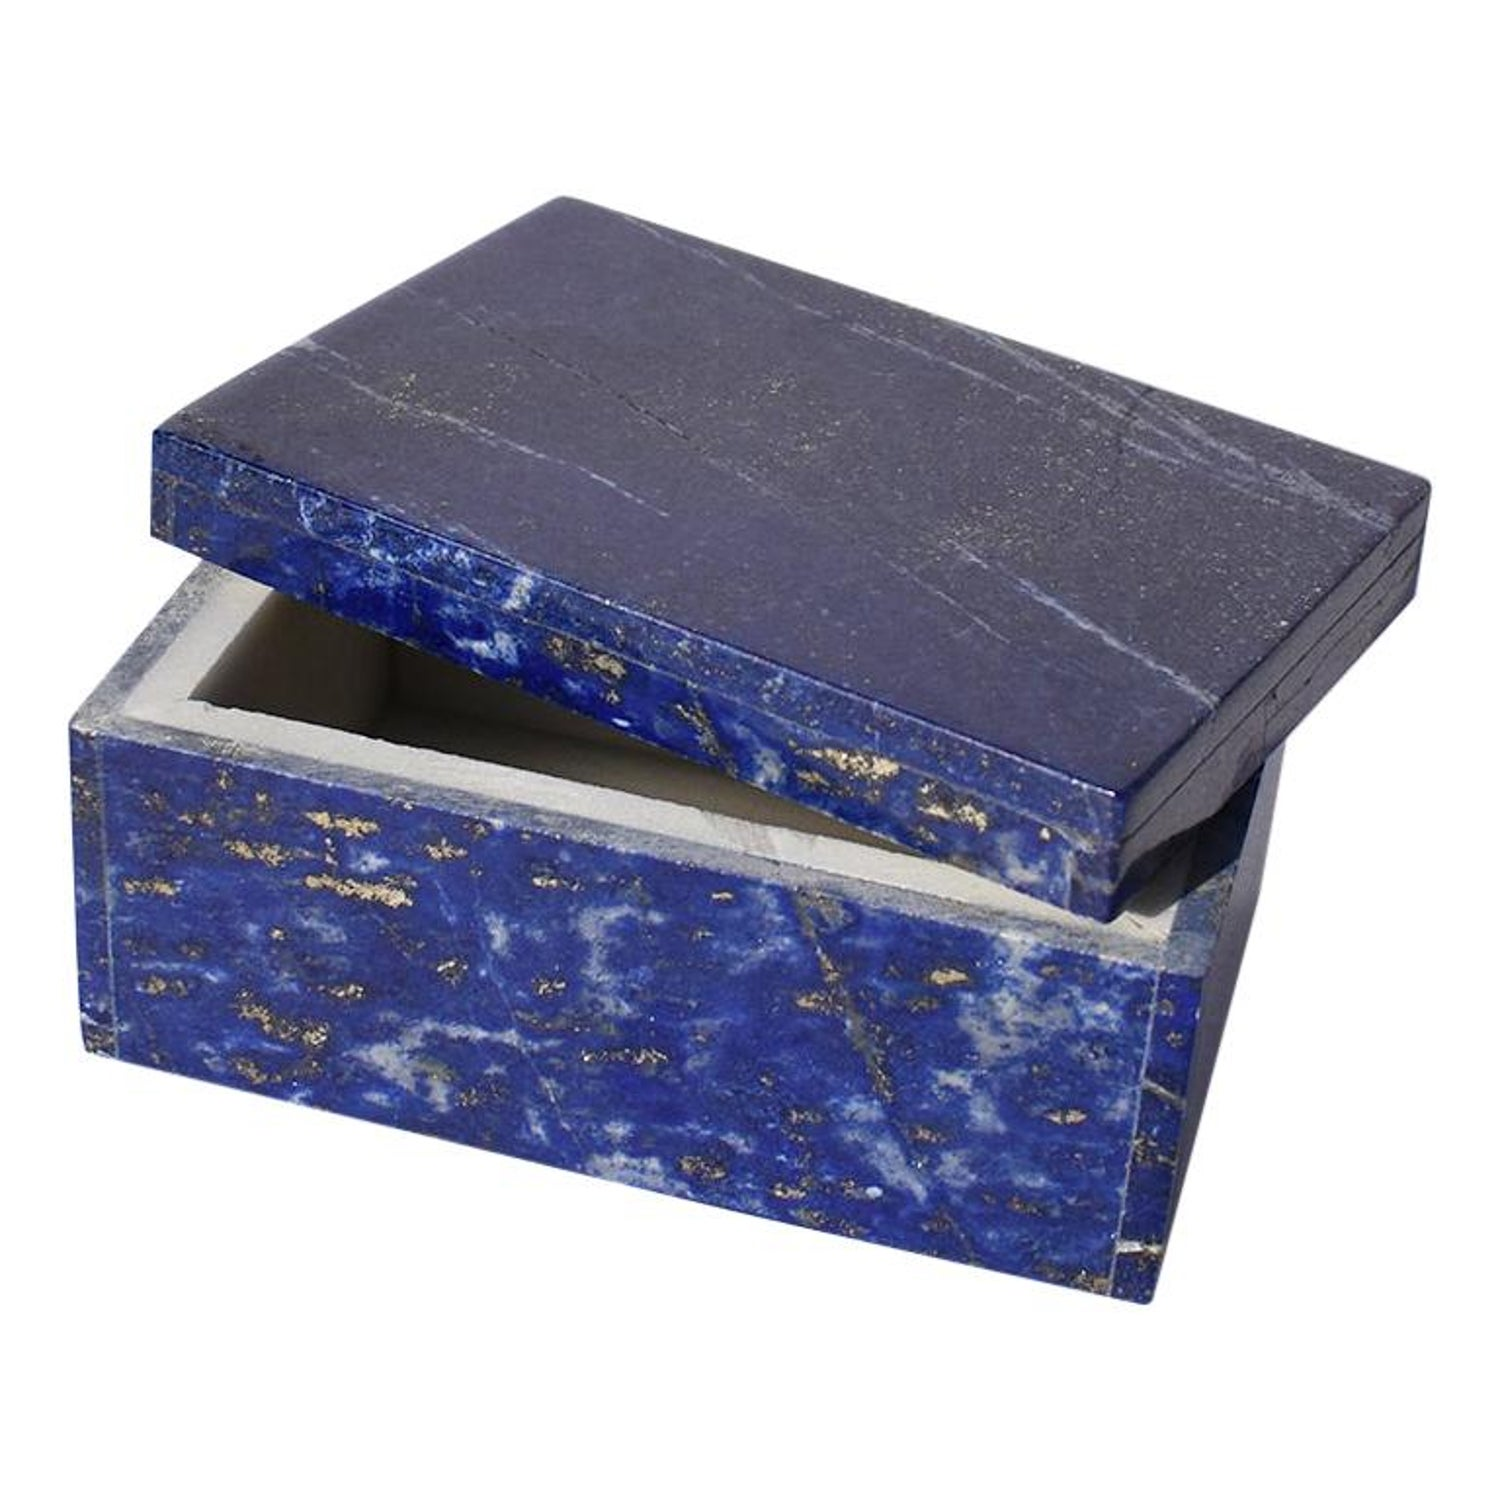 Blue Marble Ring Box with Lapis Lazuli Stone Random Work Trinket Box use for Home Decor Assents